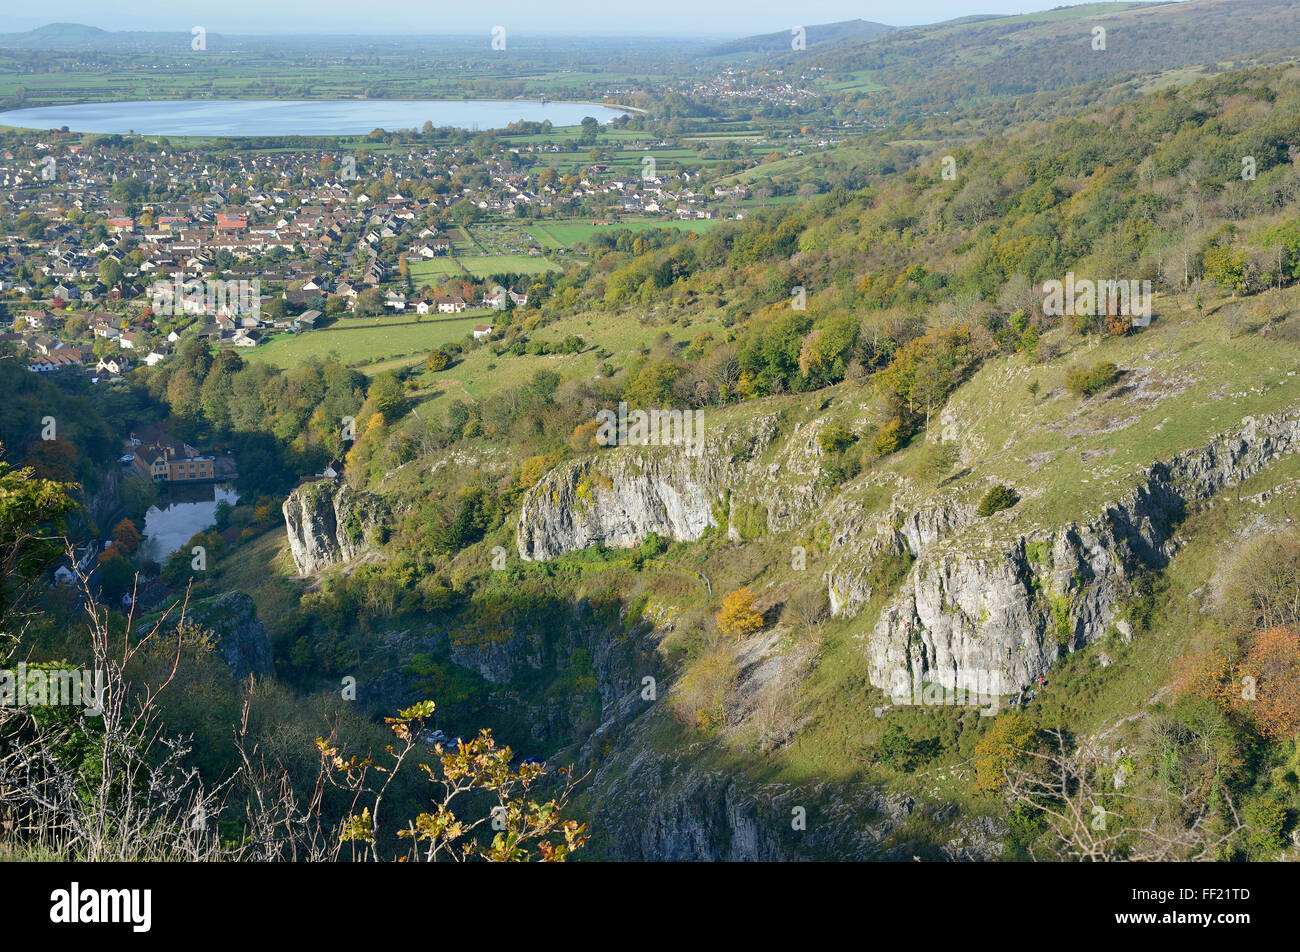 Cheddar Gorge viewed from Cheddar Cliffs, with Cheddar Reservoir, Brent Knoll & Crook Peak in the distance - Stock Image